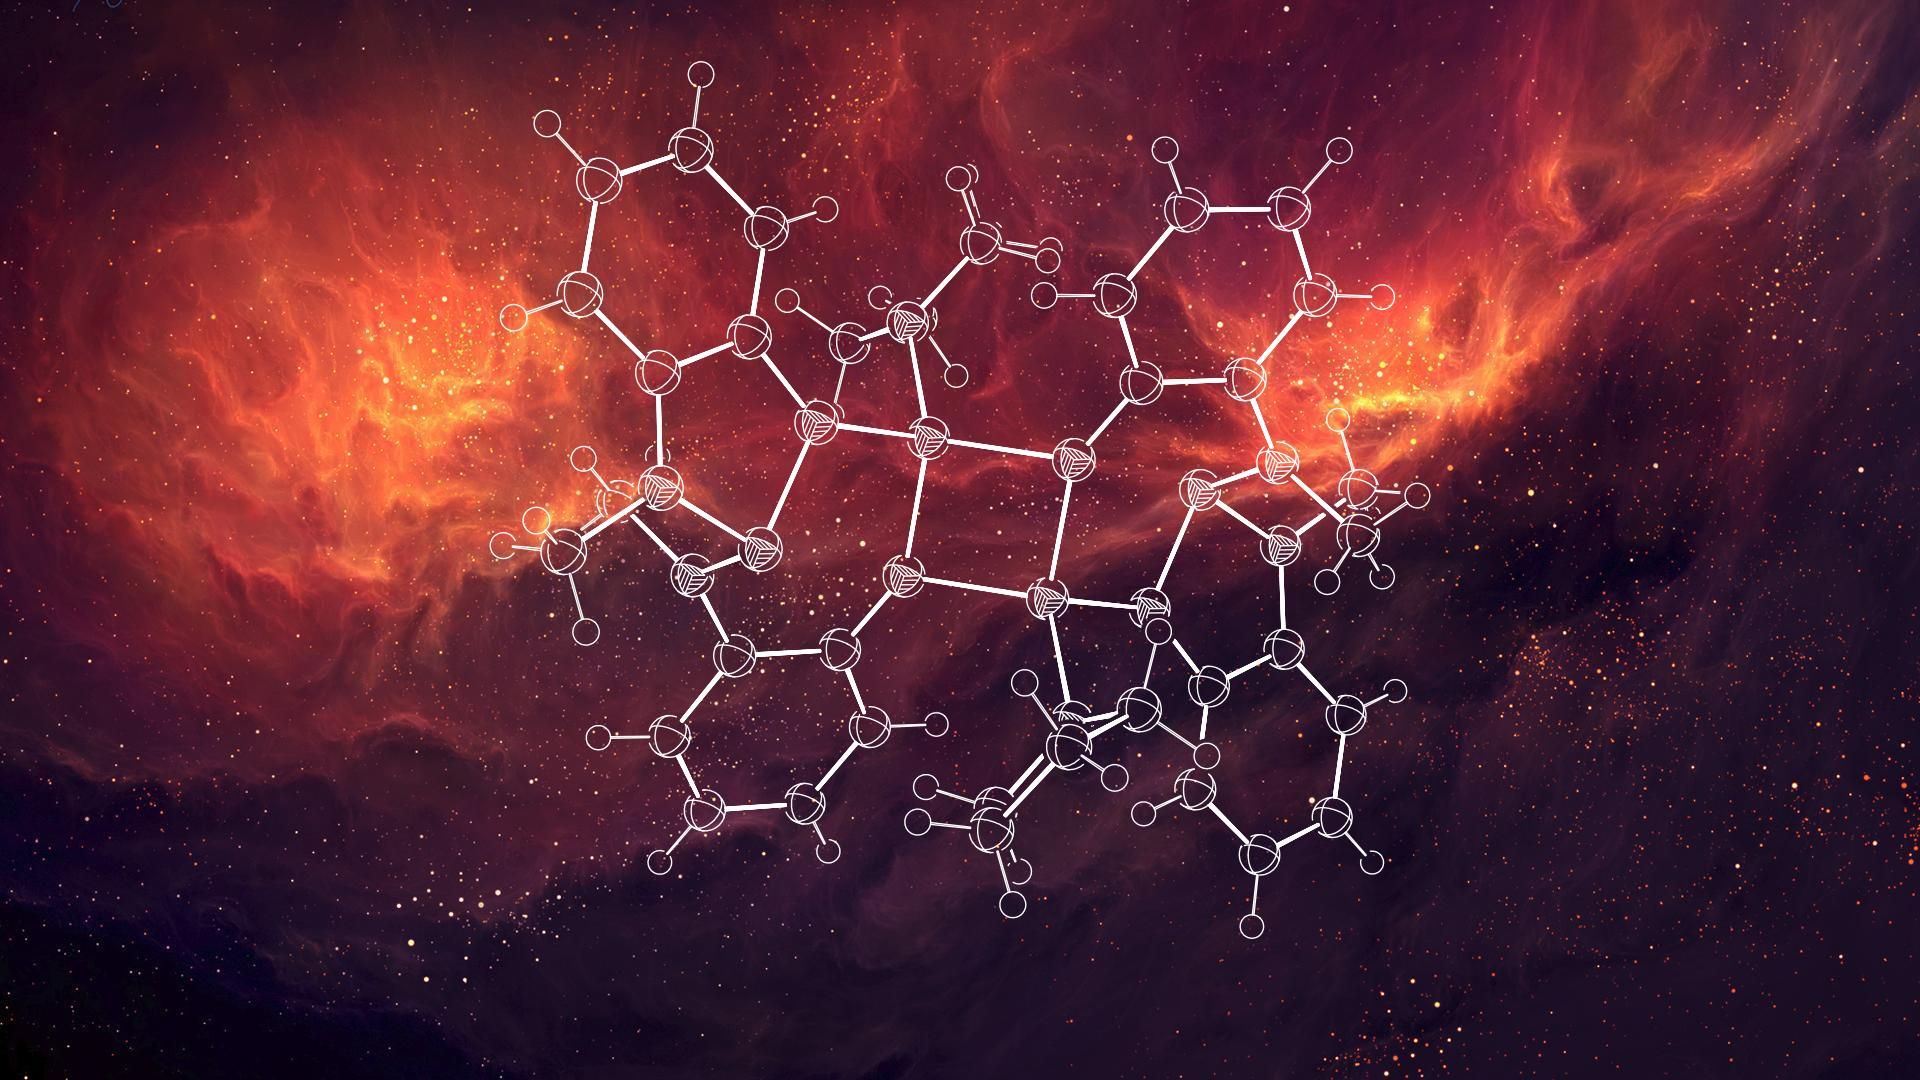 Organic Chemistry Wallpaper - WallpaperSafari